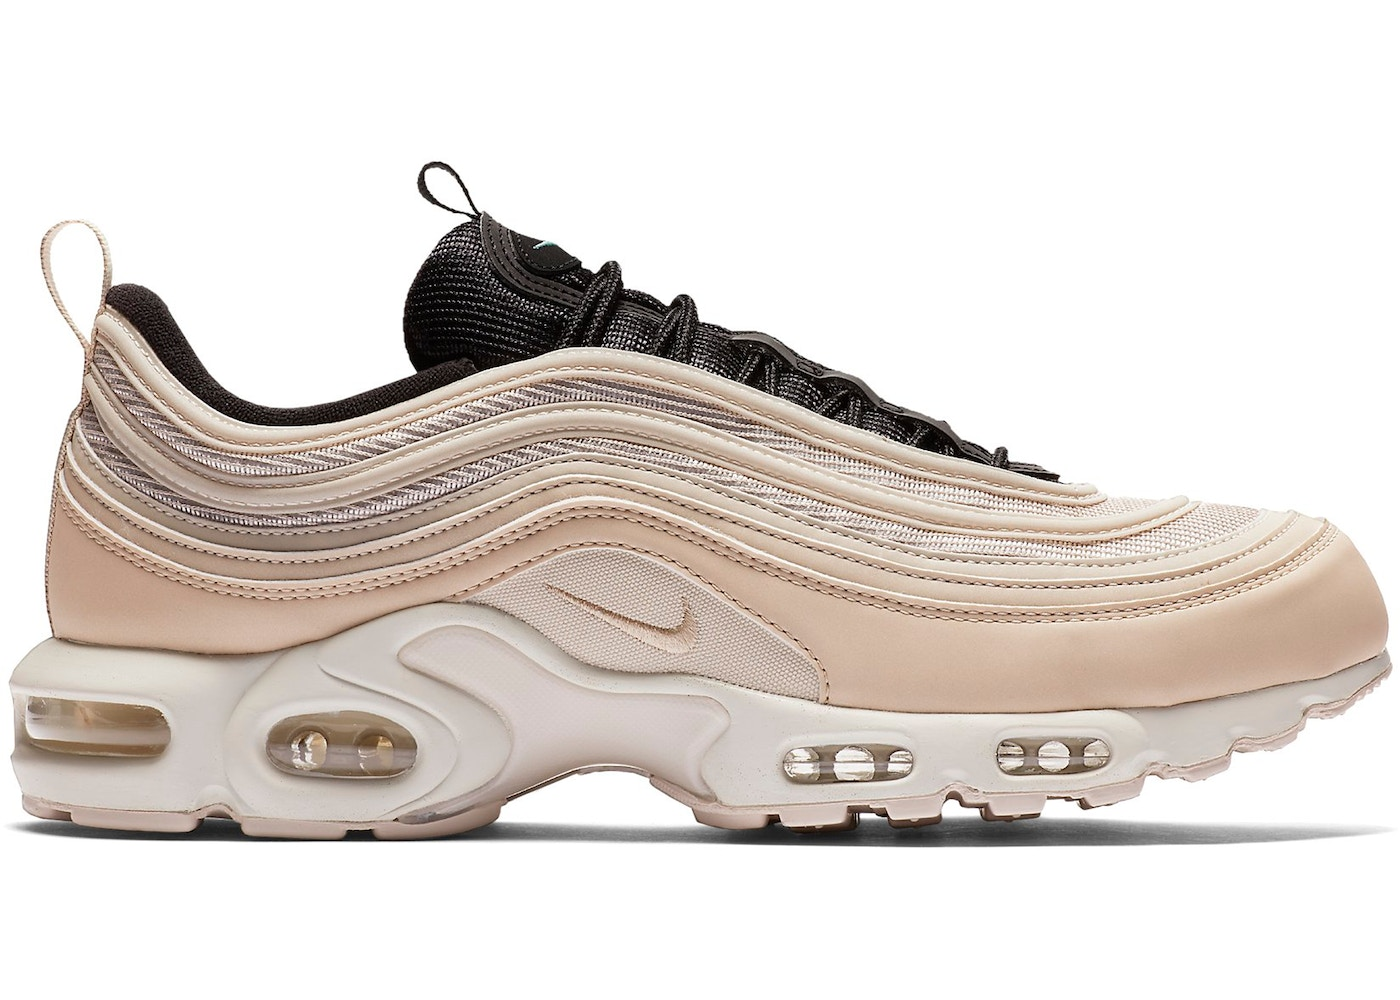 Air Max Plus 97 Light Orewood Brown